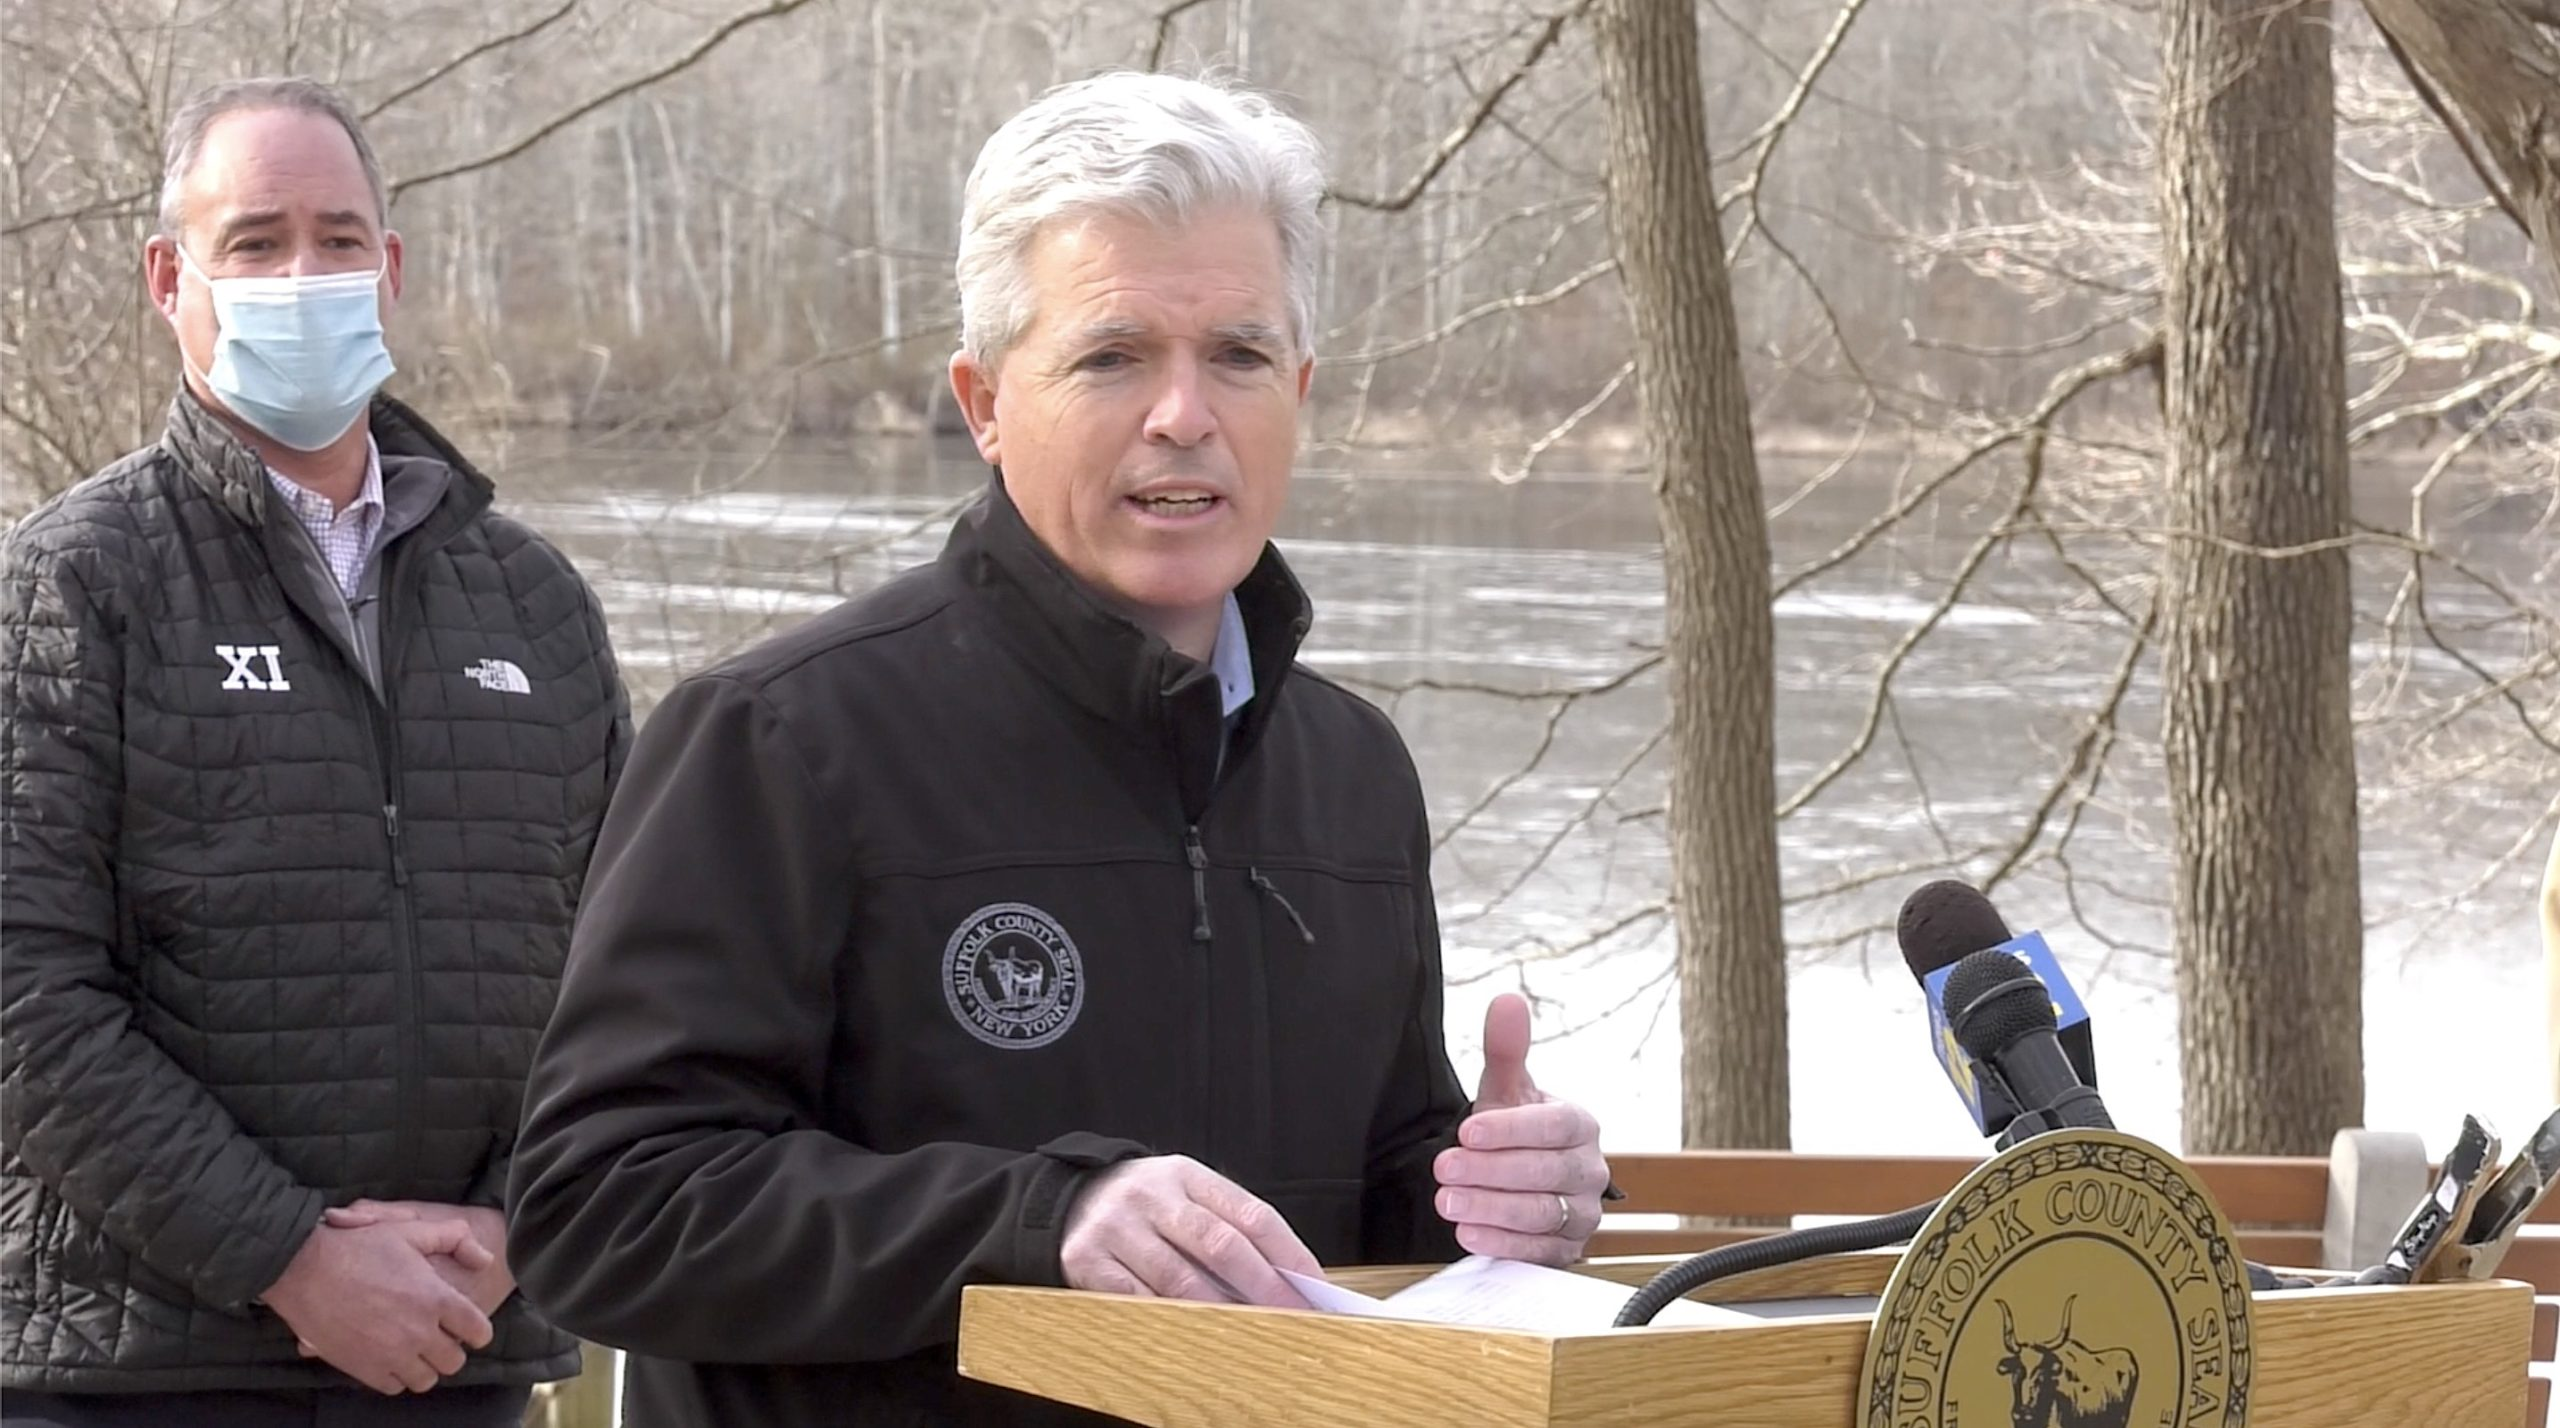 Suffolk County Executive Steve Bellone discusses the Suffolk County Department of Health Services' guidelines for allowing high-risk sports to resume in and outside of schools at a press conference at Blydenburgh County Park in Smithtown January 25.